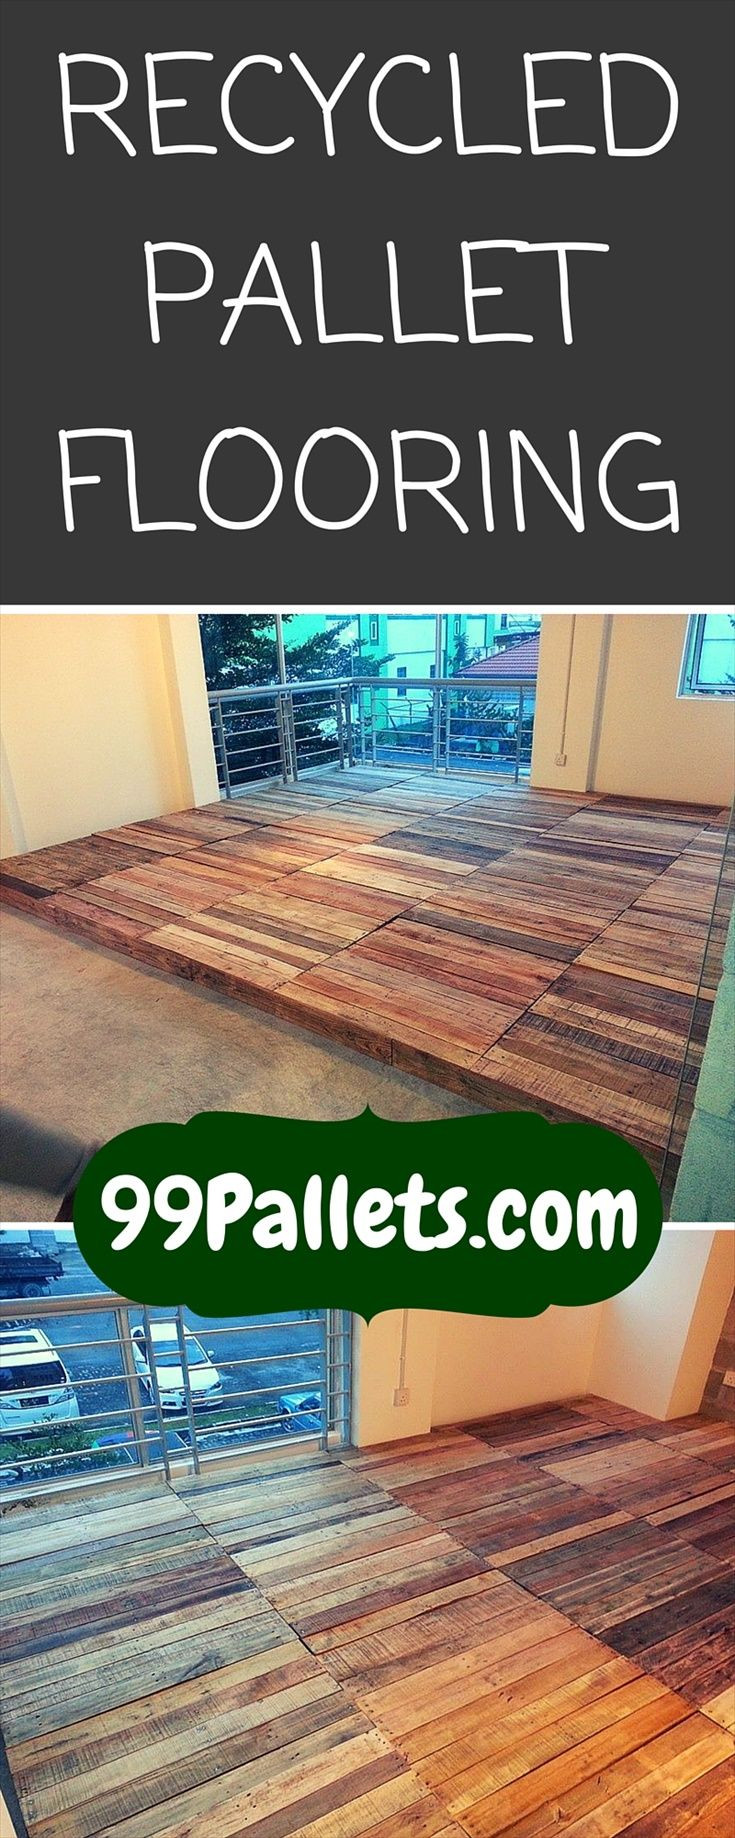 hardwood floor refinishing in delaware county pa of 1157 best favorite places spaces images by stephen reynolds in recycled pallet flooring diy